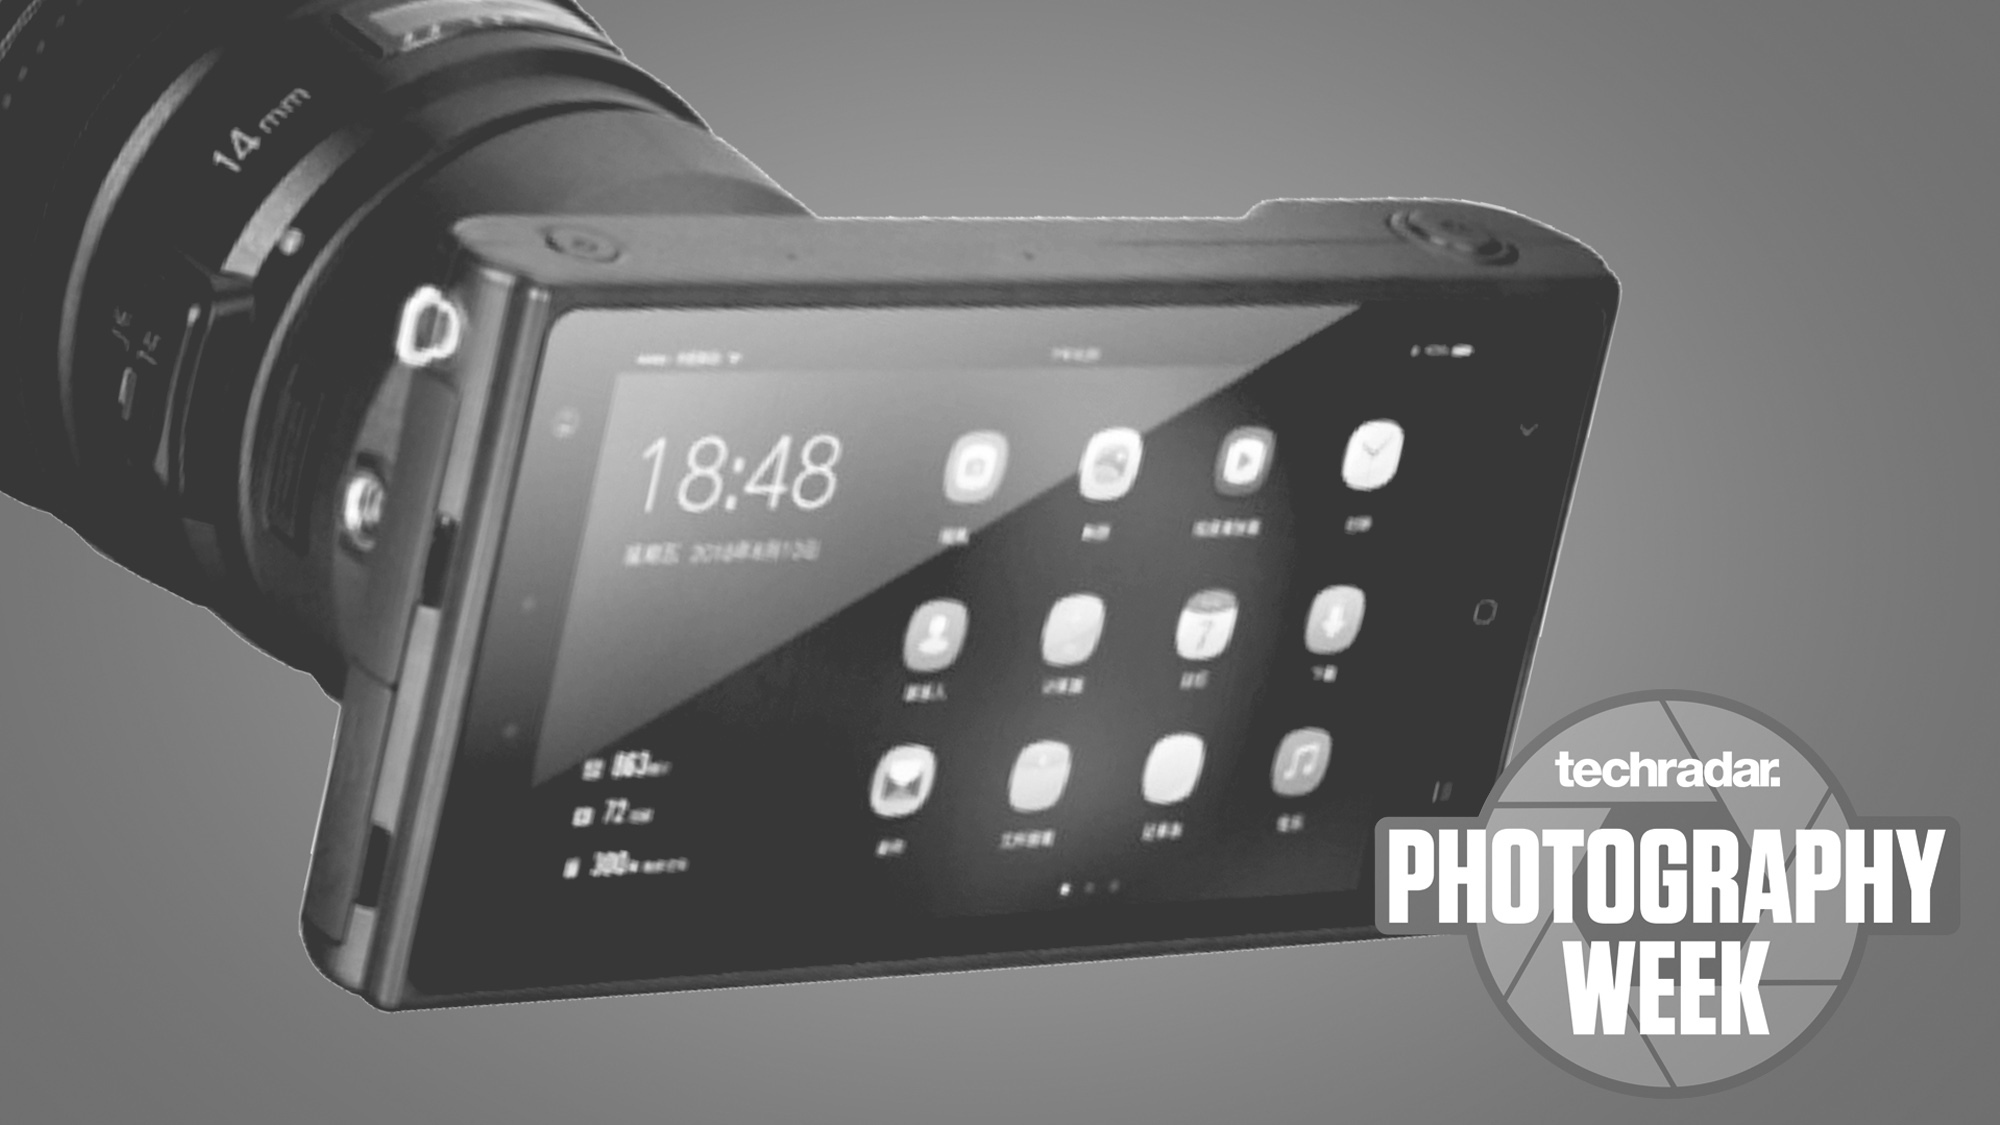 The rear screen on the Yongnuo mirrorless camera